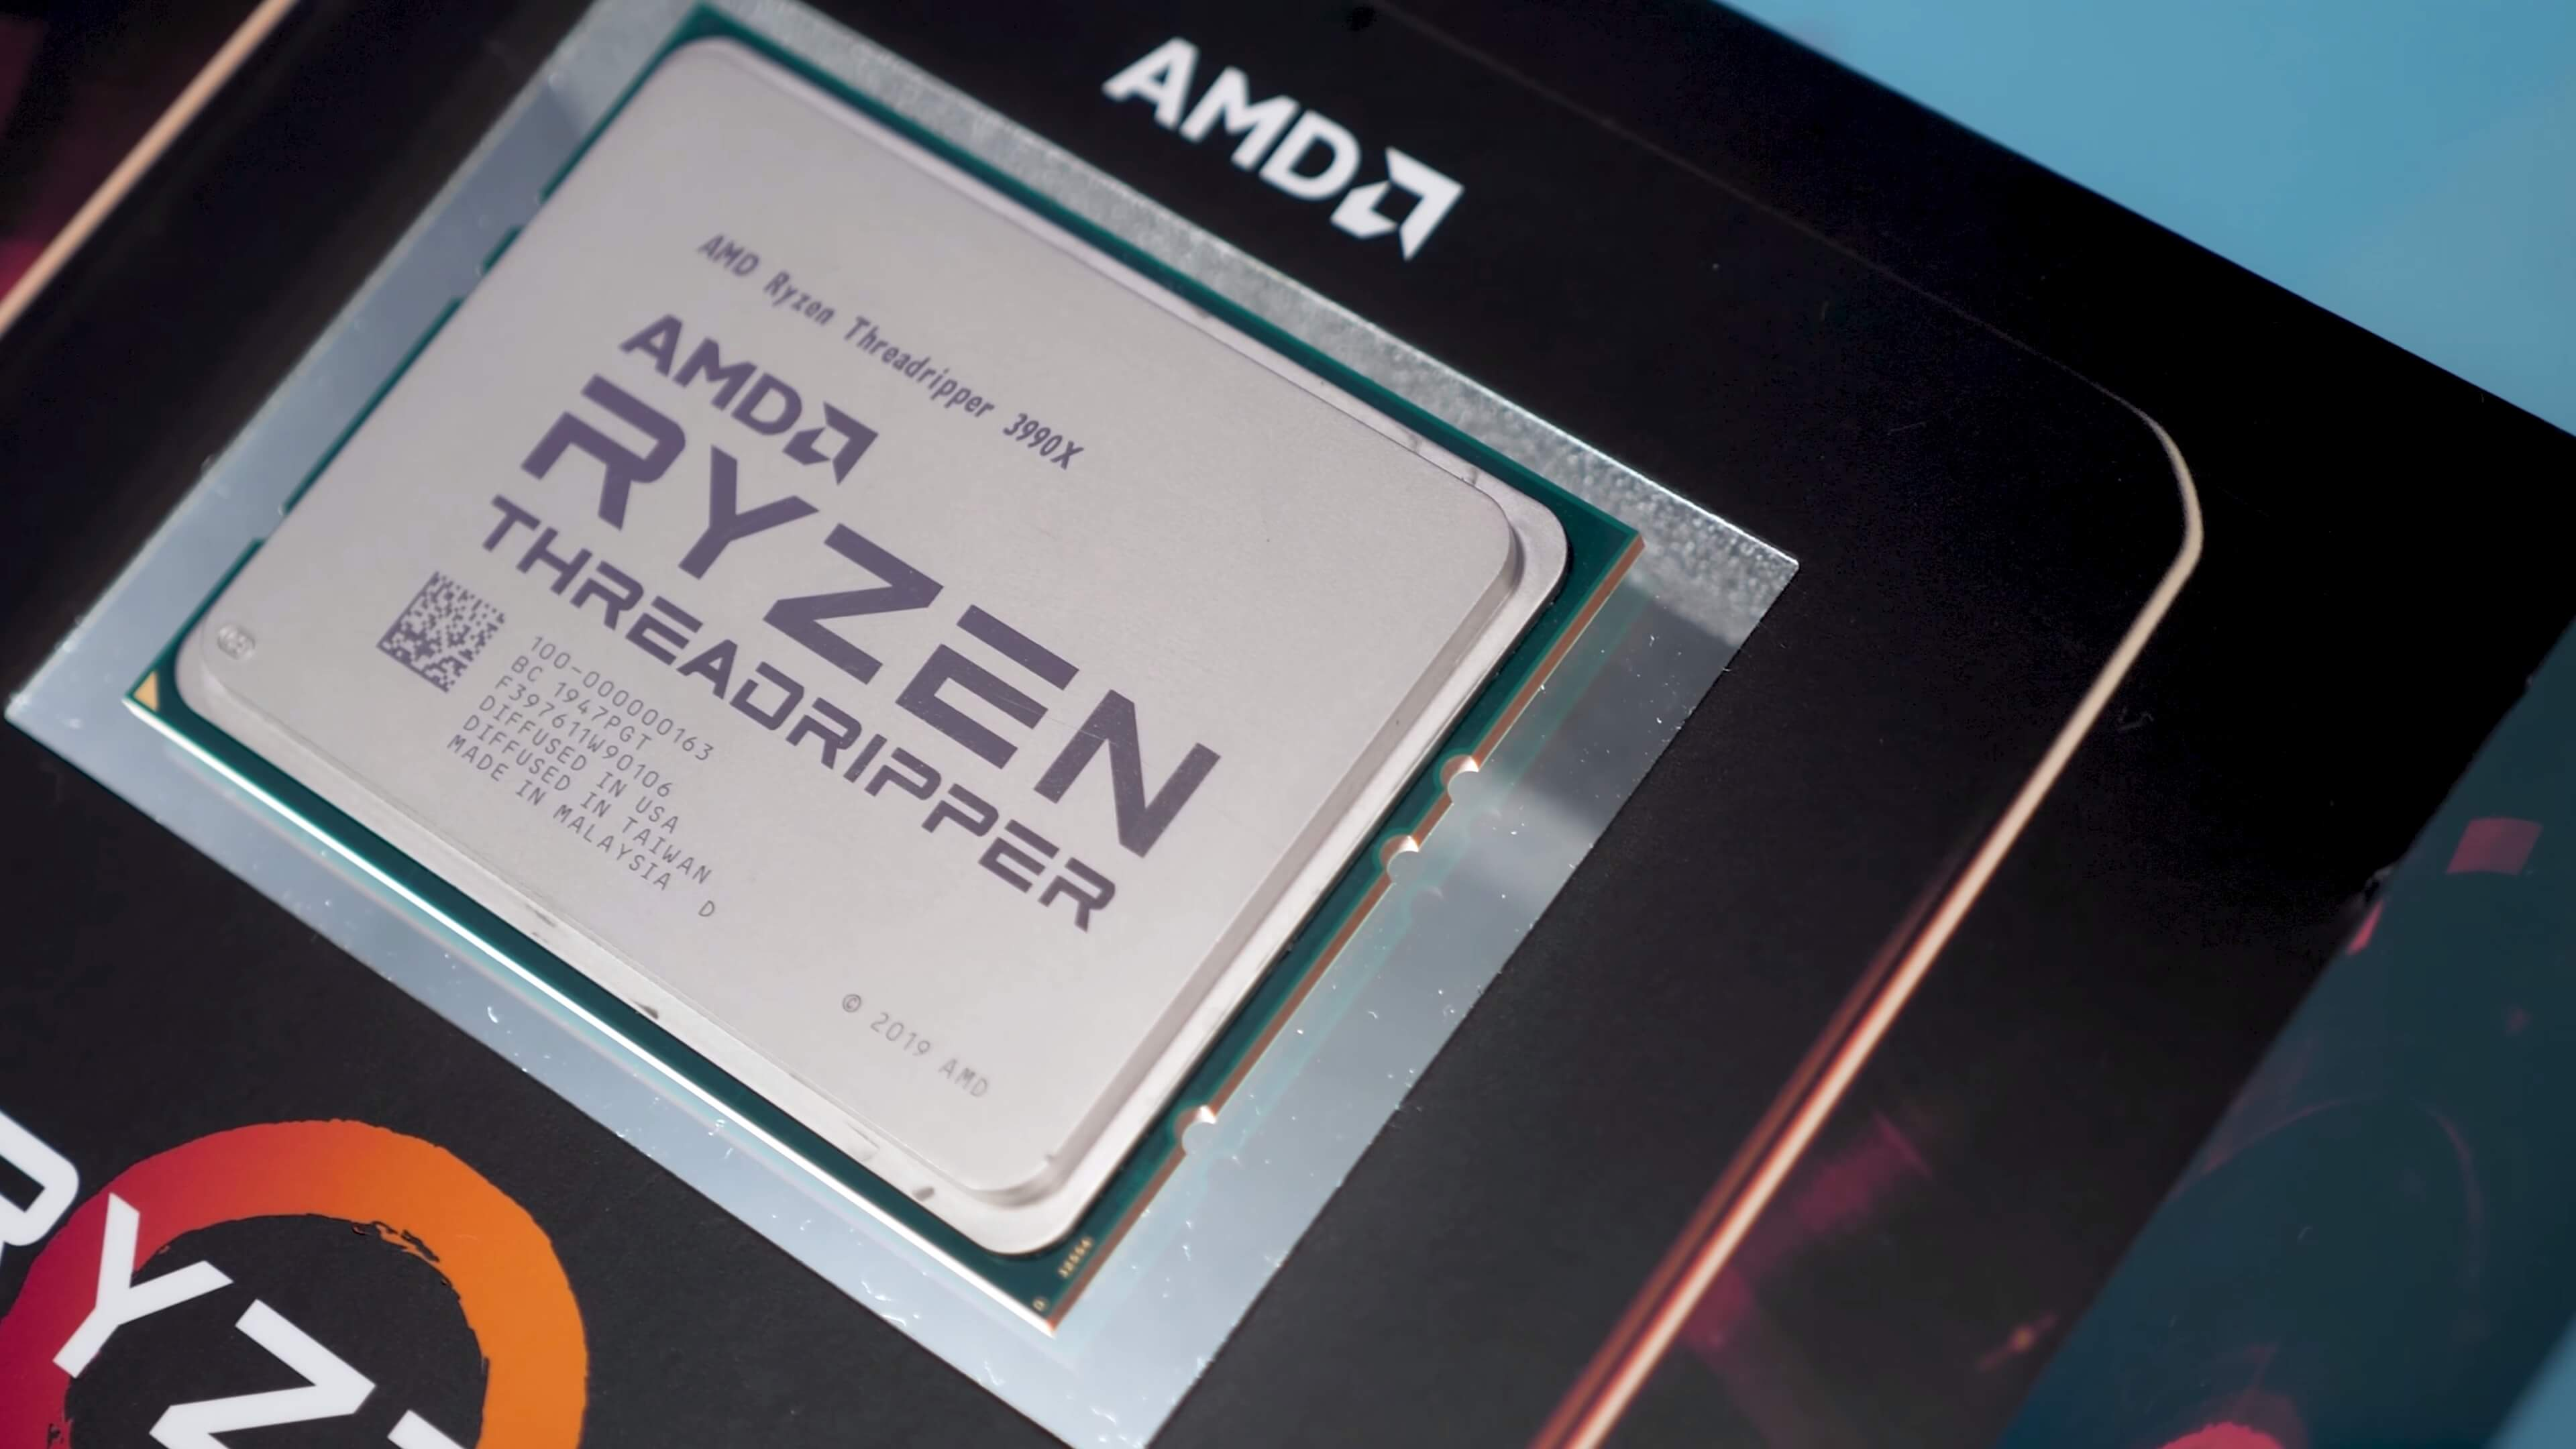 Amd Threadripper 3990x Review Absolute Madness